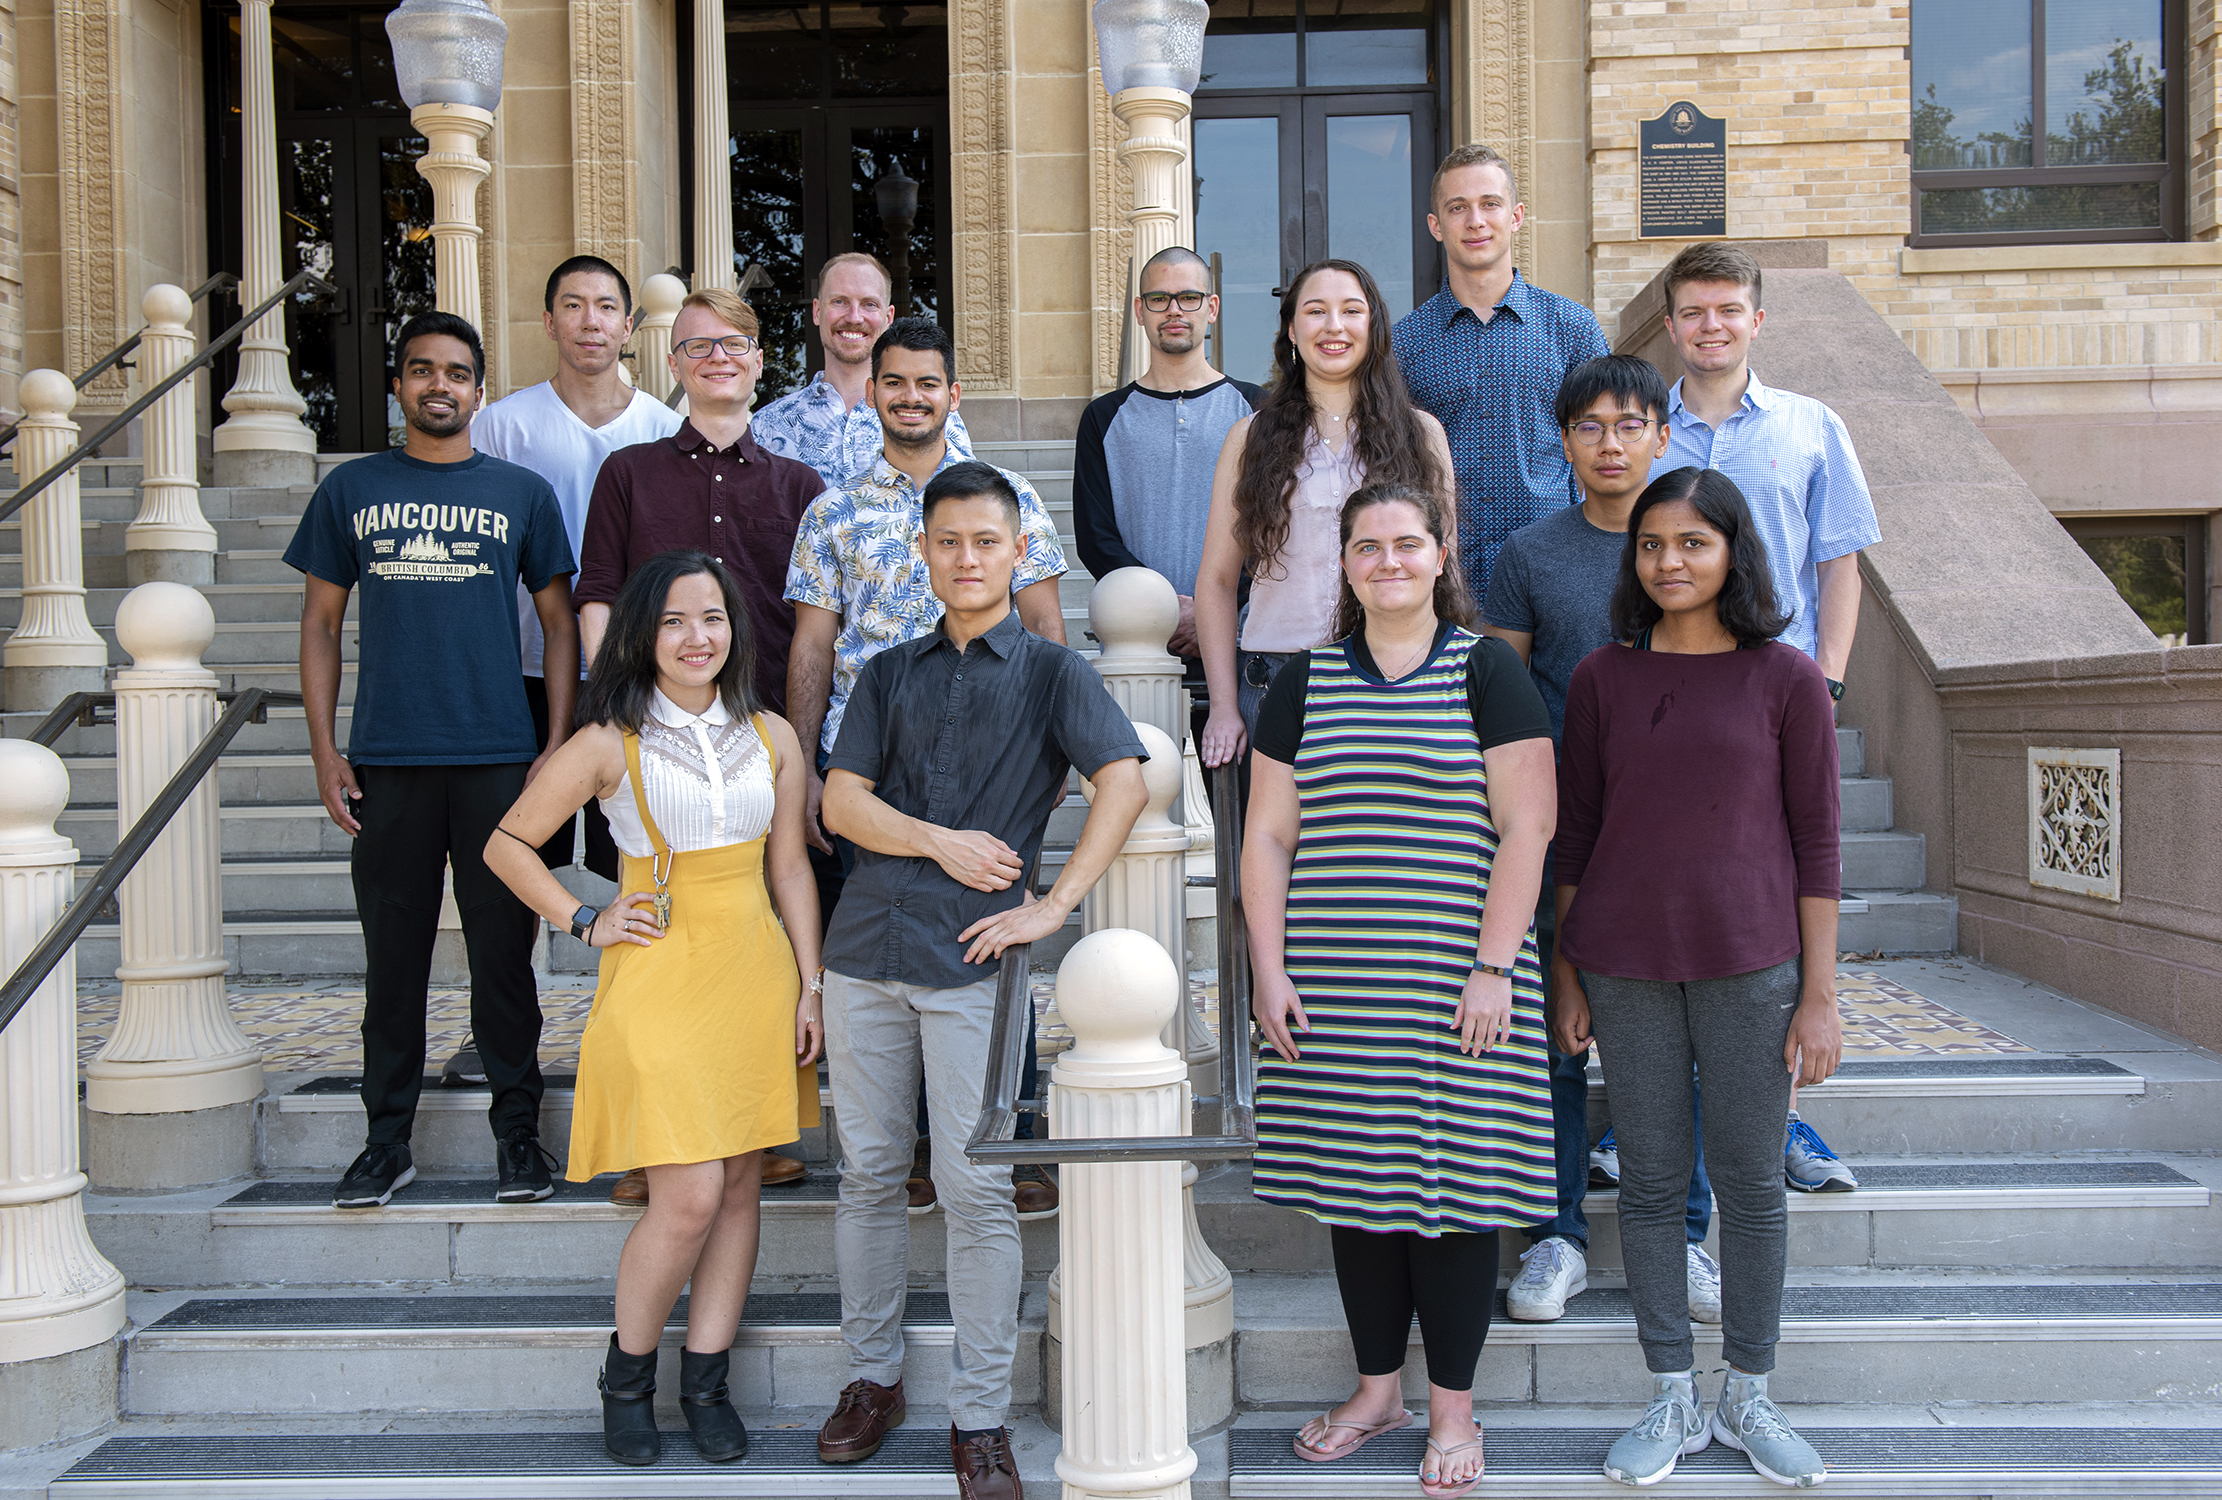 Texas A&M chemist Matthew Sheldon and his research group on the front steps of the Texas A&M Chemistry Building